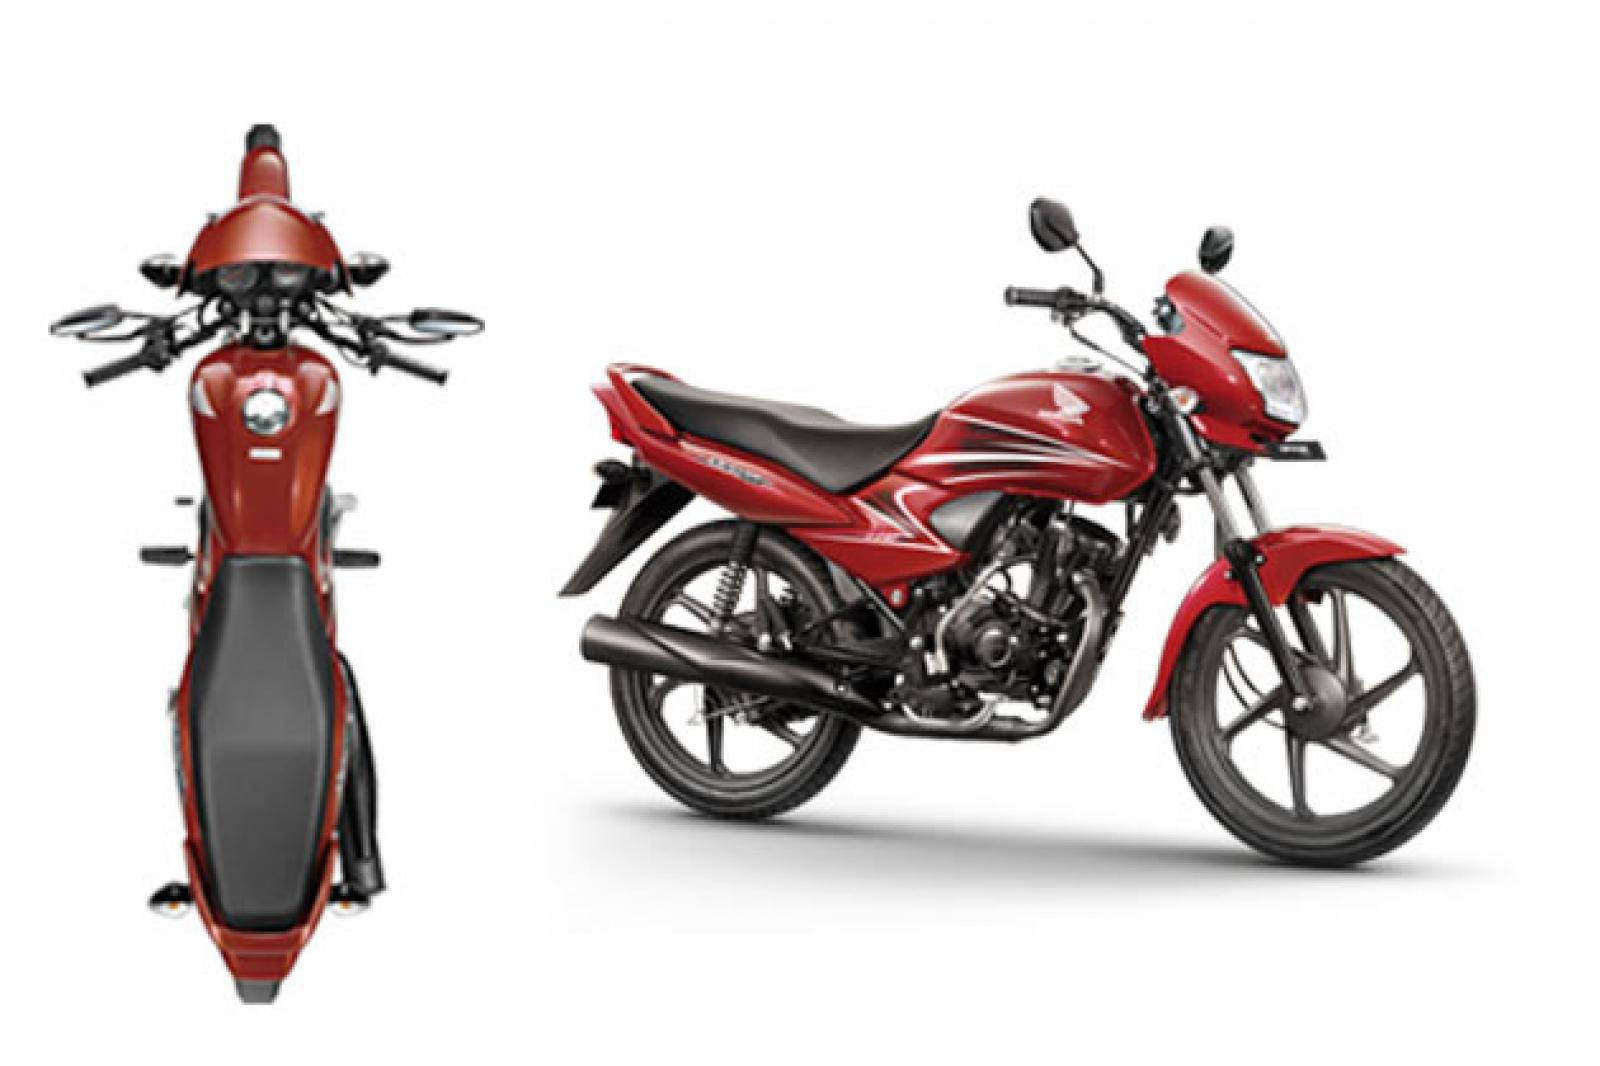 report on hero honda motors Note: the hero splendor 100cc motorcycle shown in this report is illustrative in nature with an eye on the future, hero motocorp has managed to develop three new engines that will replace honda's motors on a multitude of hero motorcycles including best sellers such as the splendor and the passion.